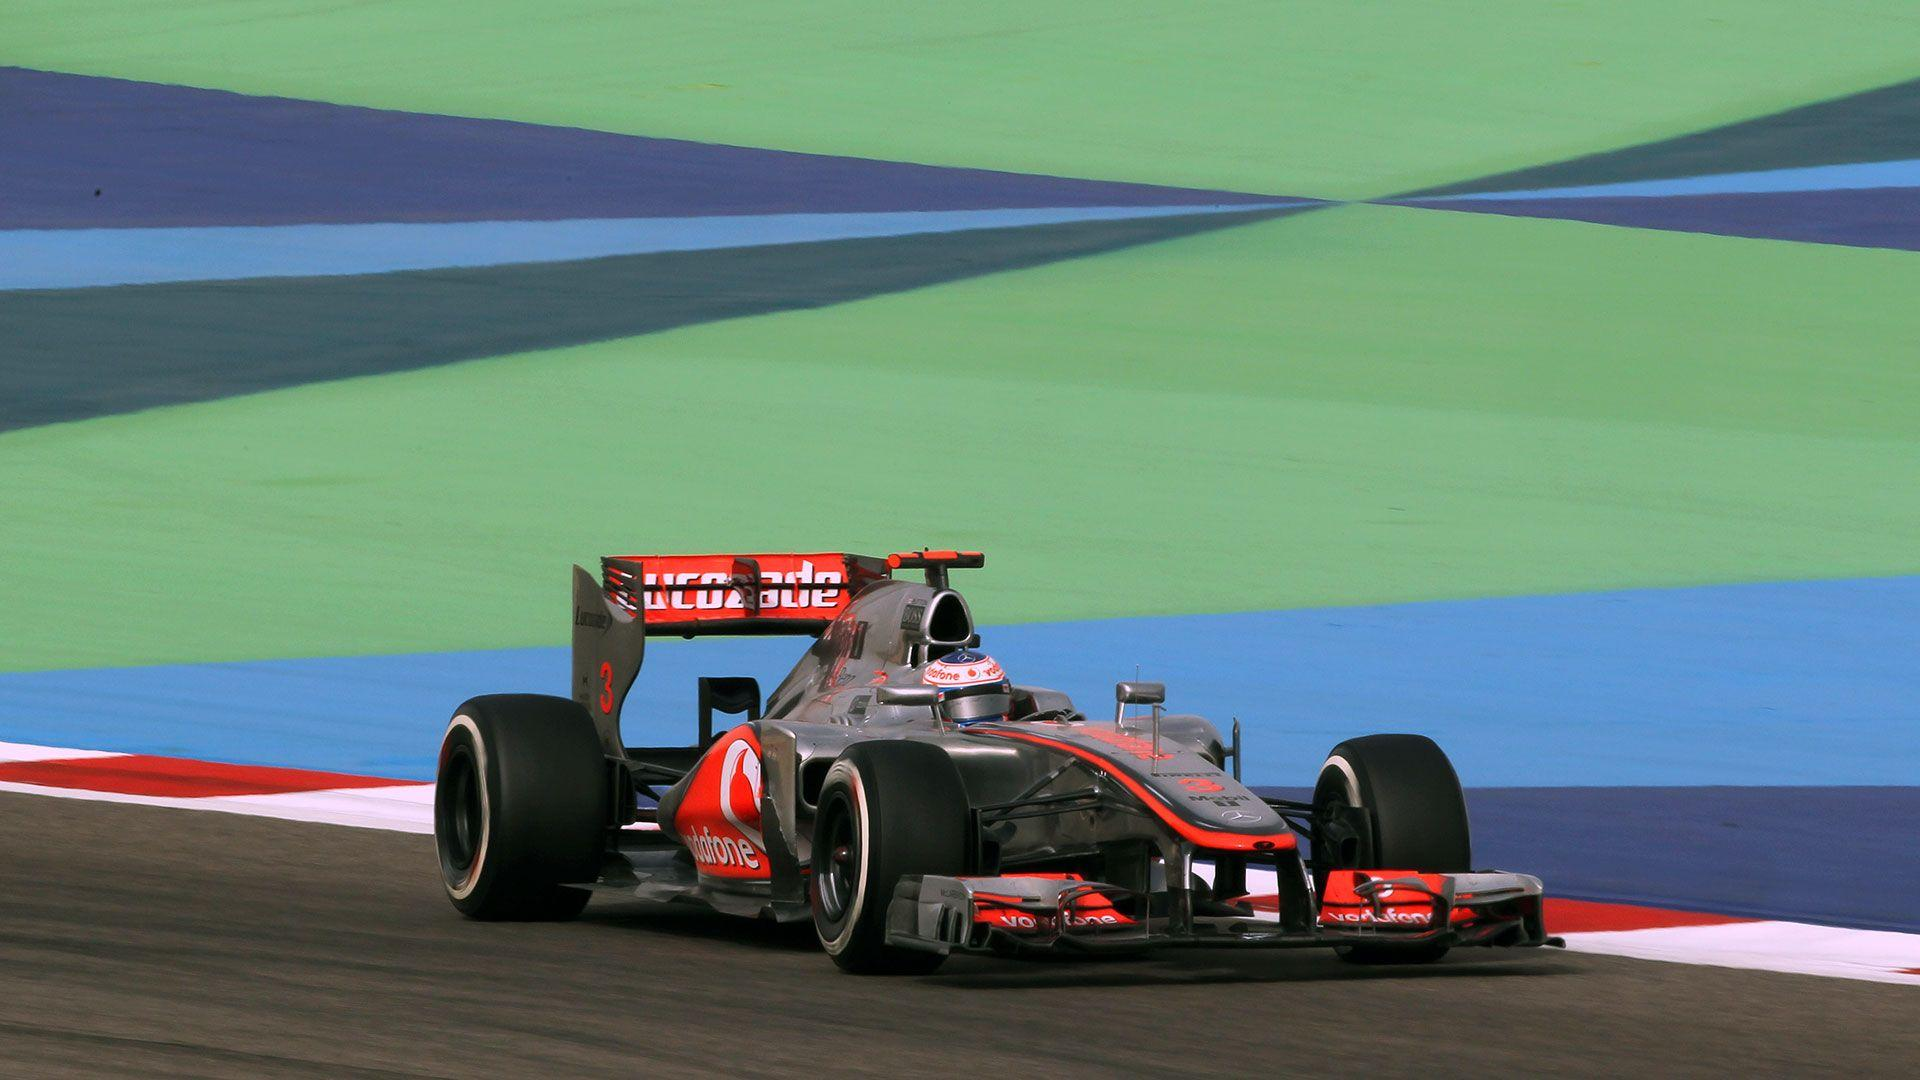 HD Wallpapers 2012 Formula 1 Grand Prix of Bahrain | F1-Fansite.com